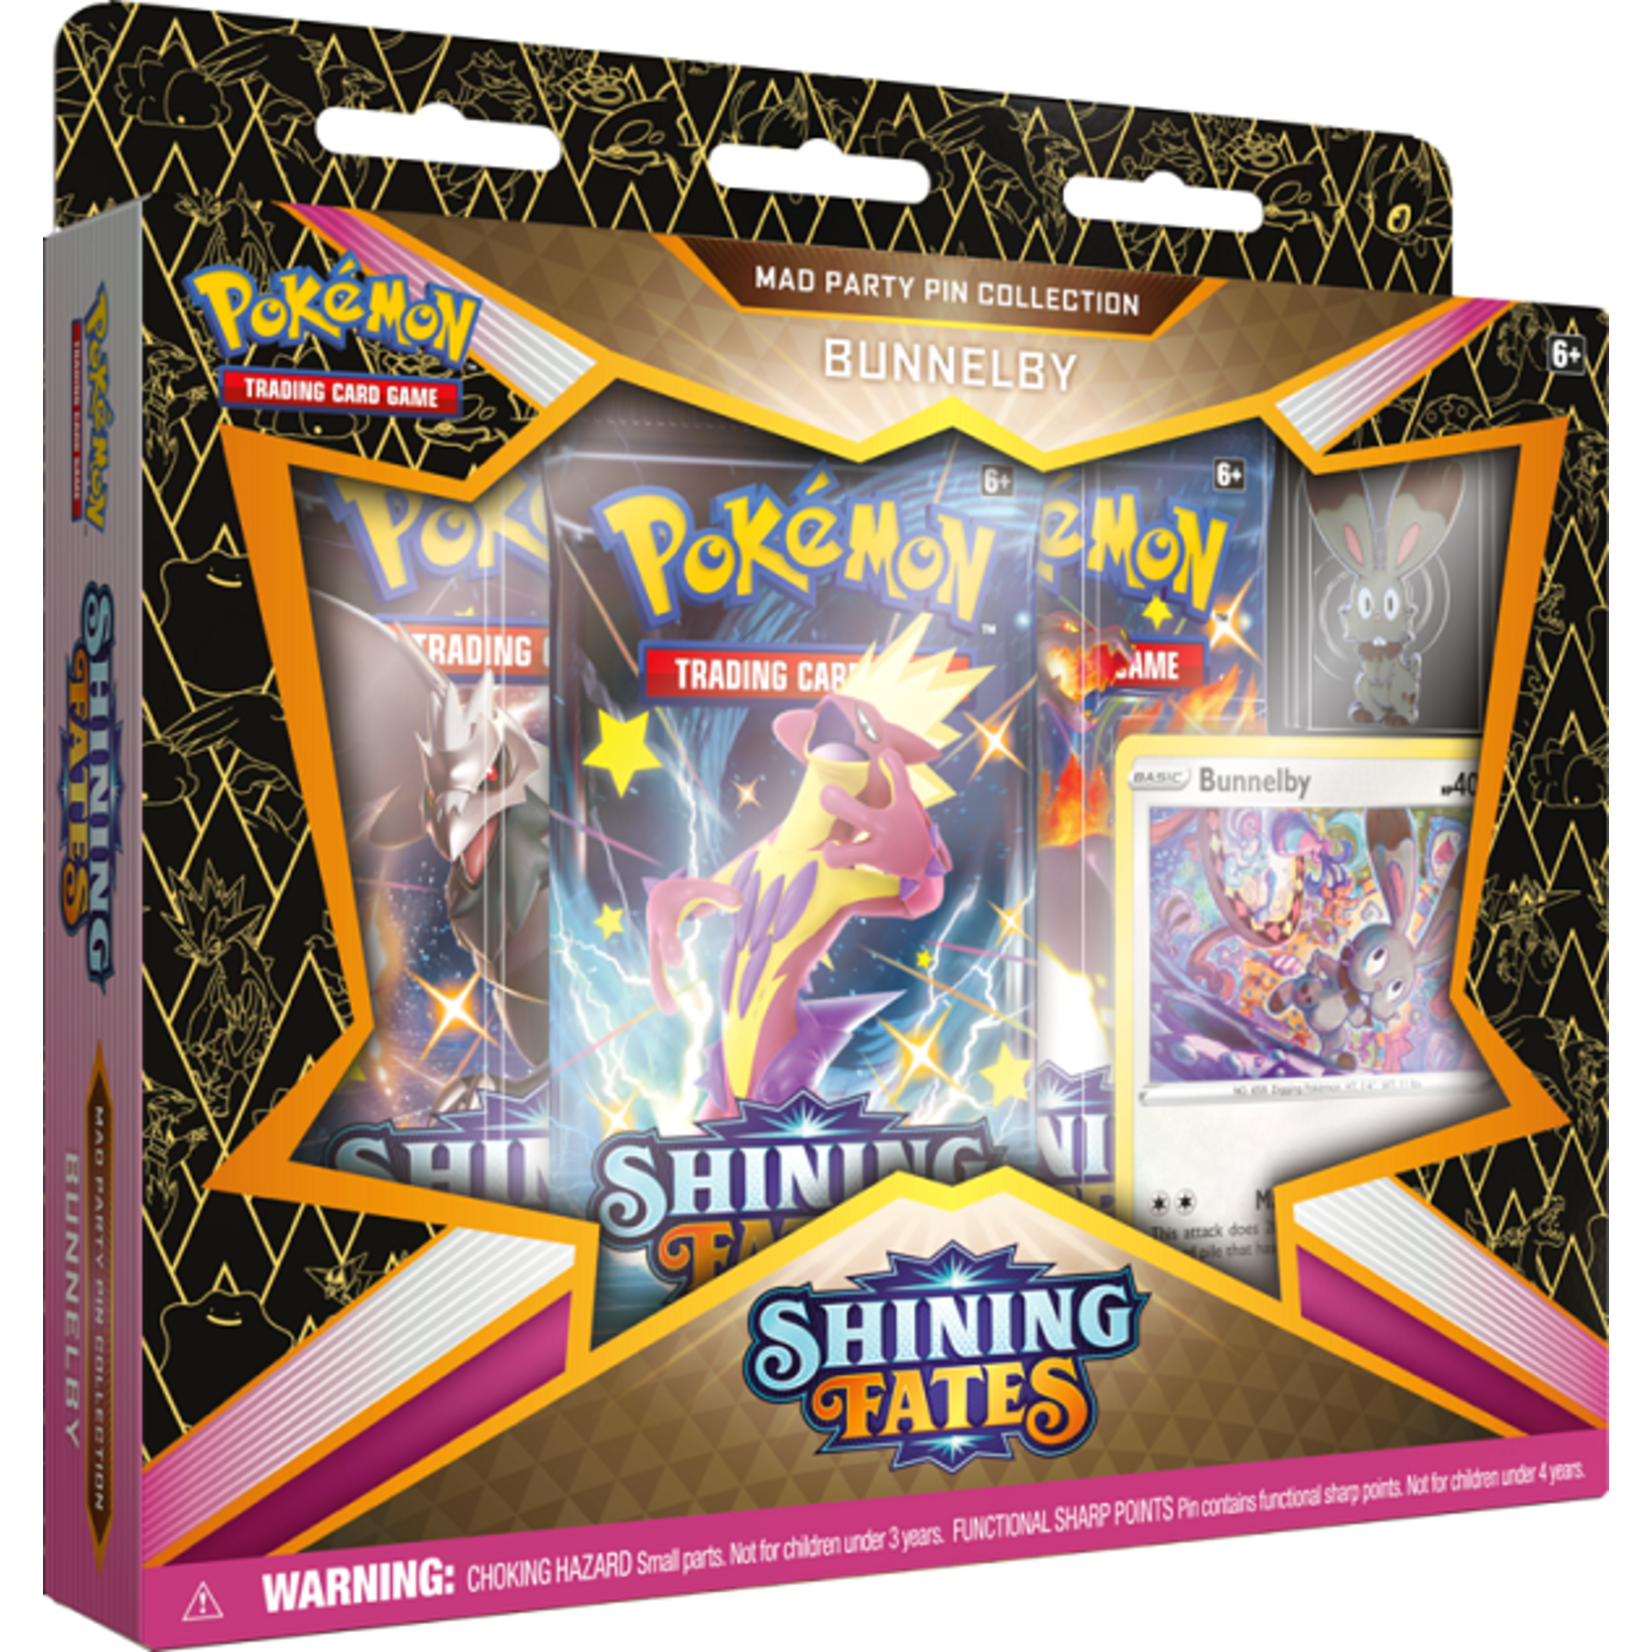 Pokemon Pokemon Shining Fates Party Pin Collection - Bunnelby